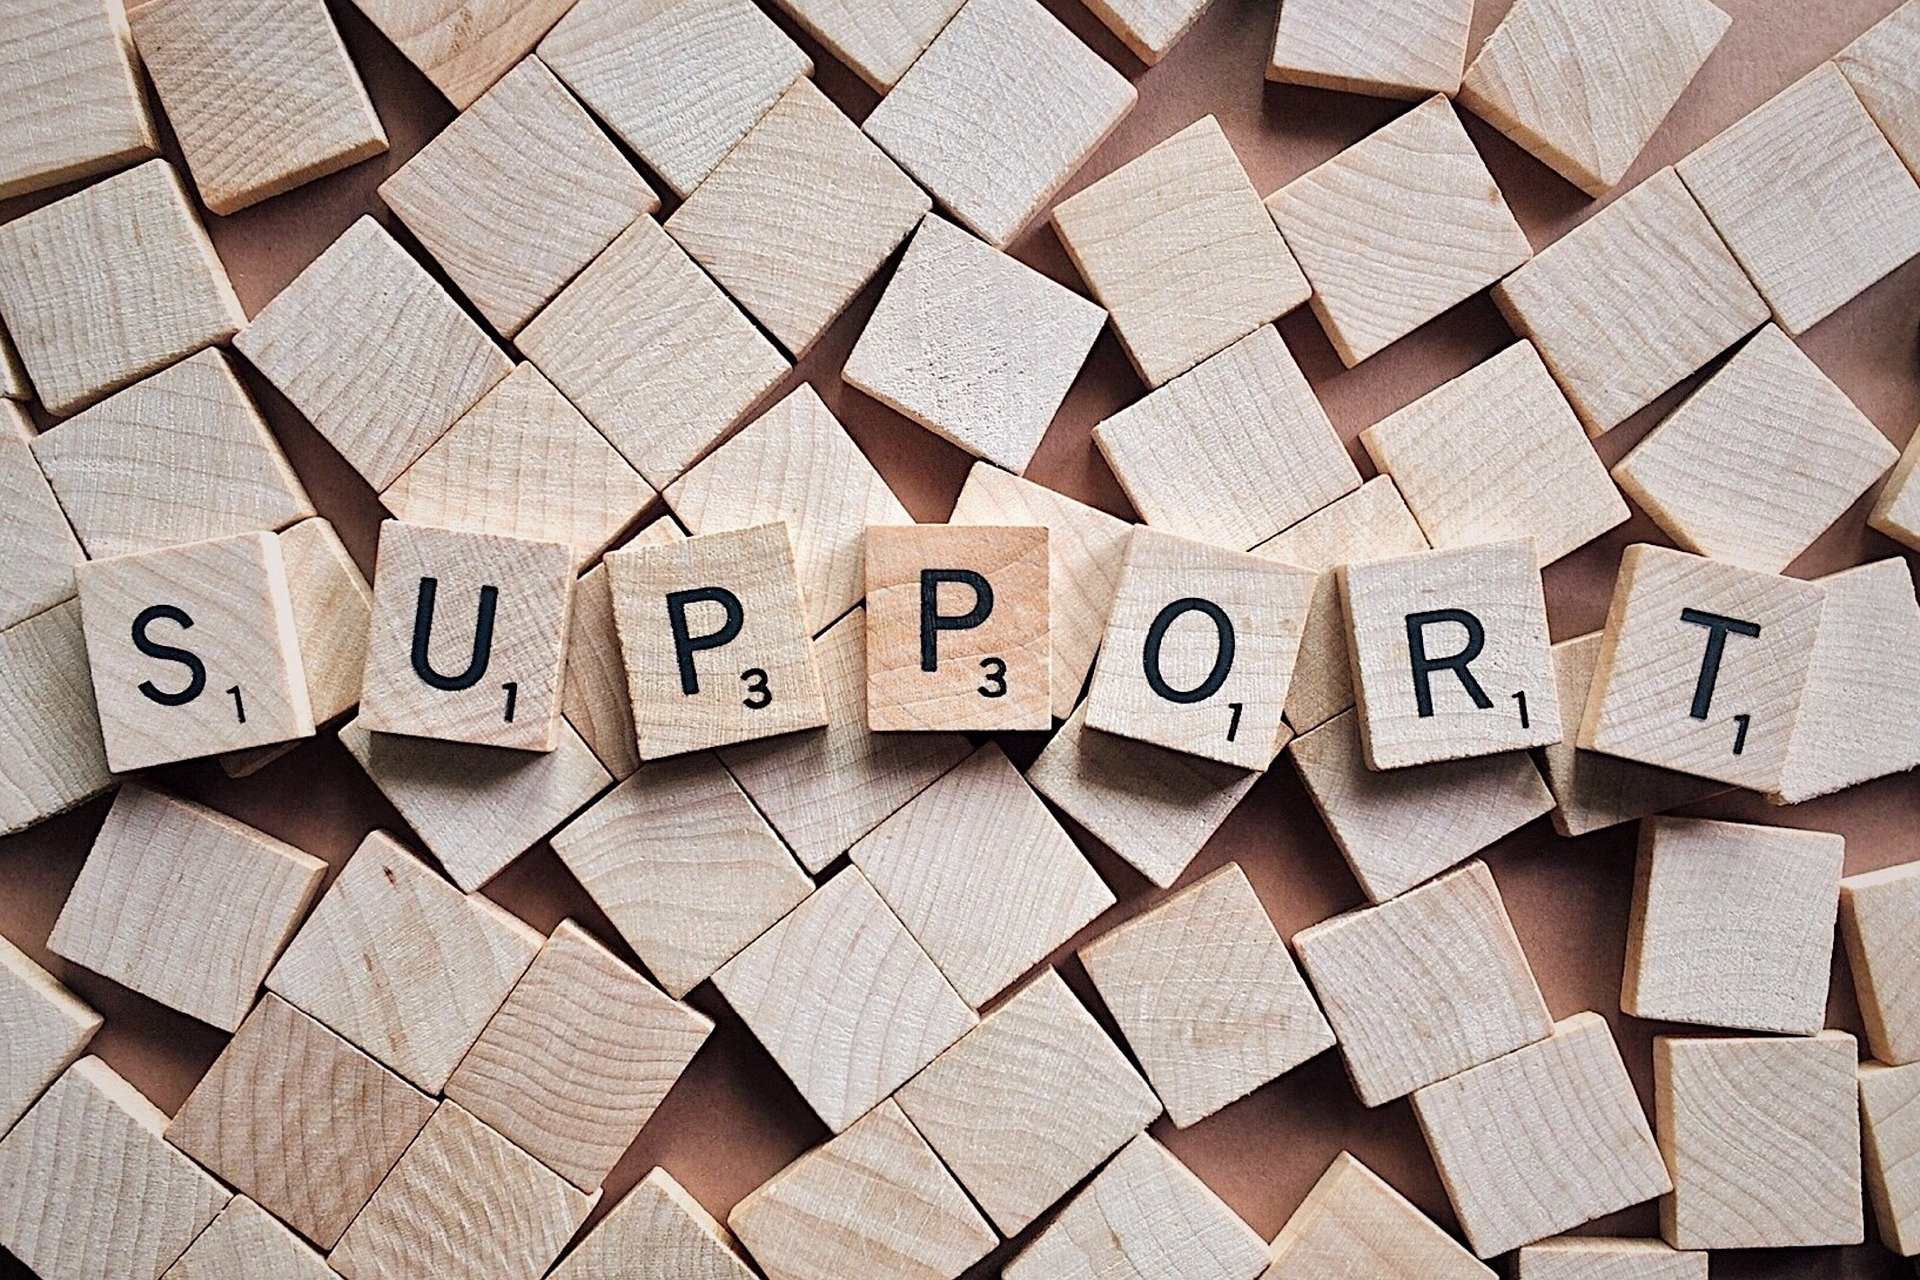 Support - written in wooden scrabble letters